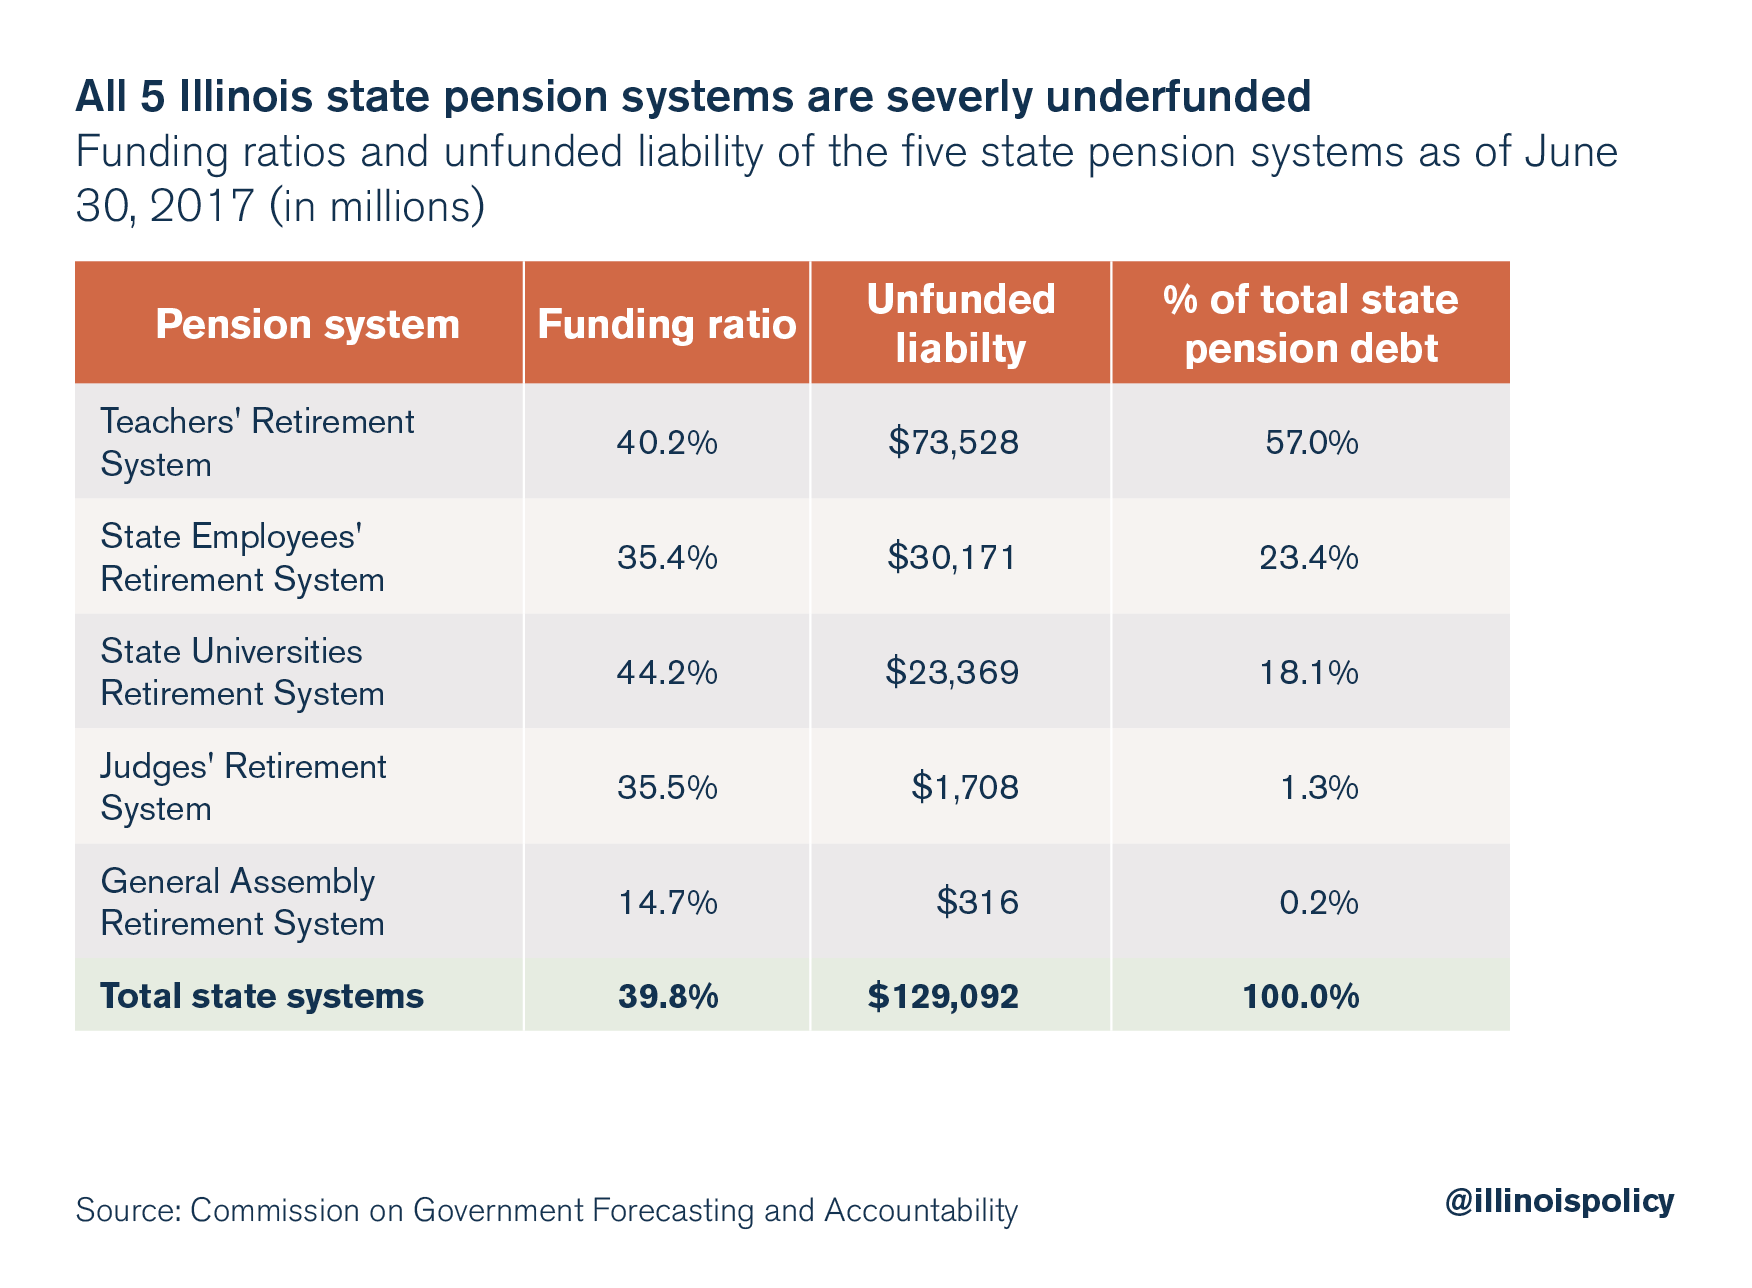 All 5 Illinois state pension systems are severely underfunded